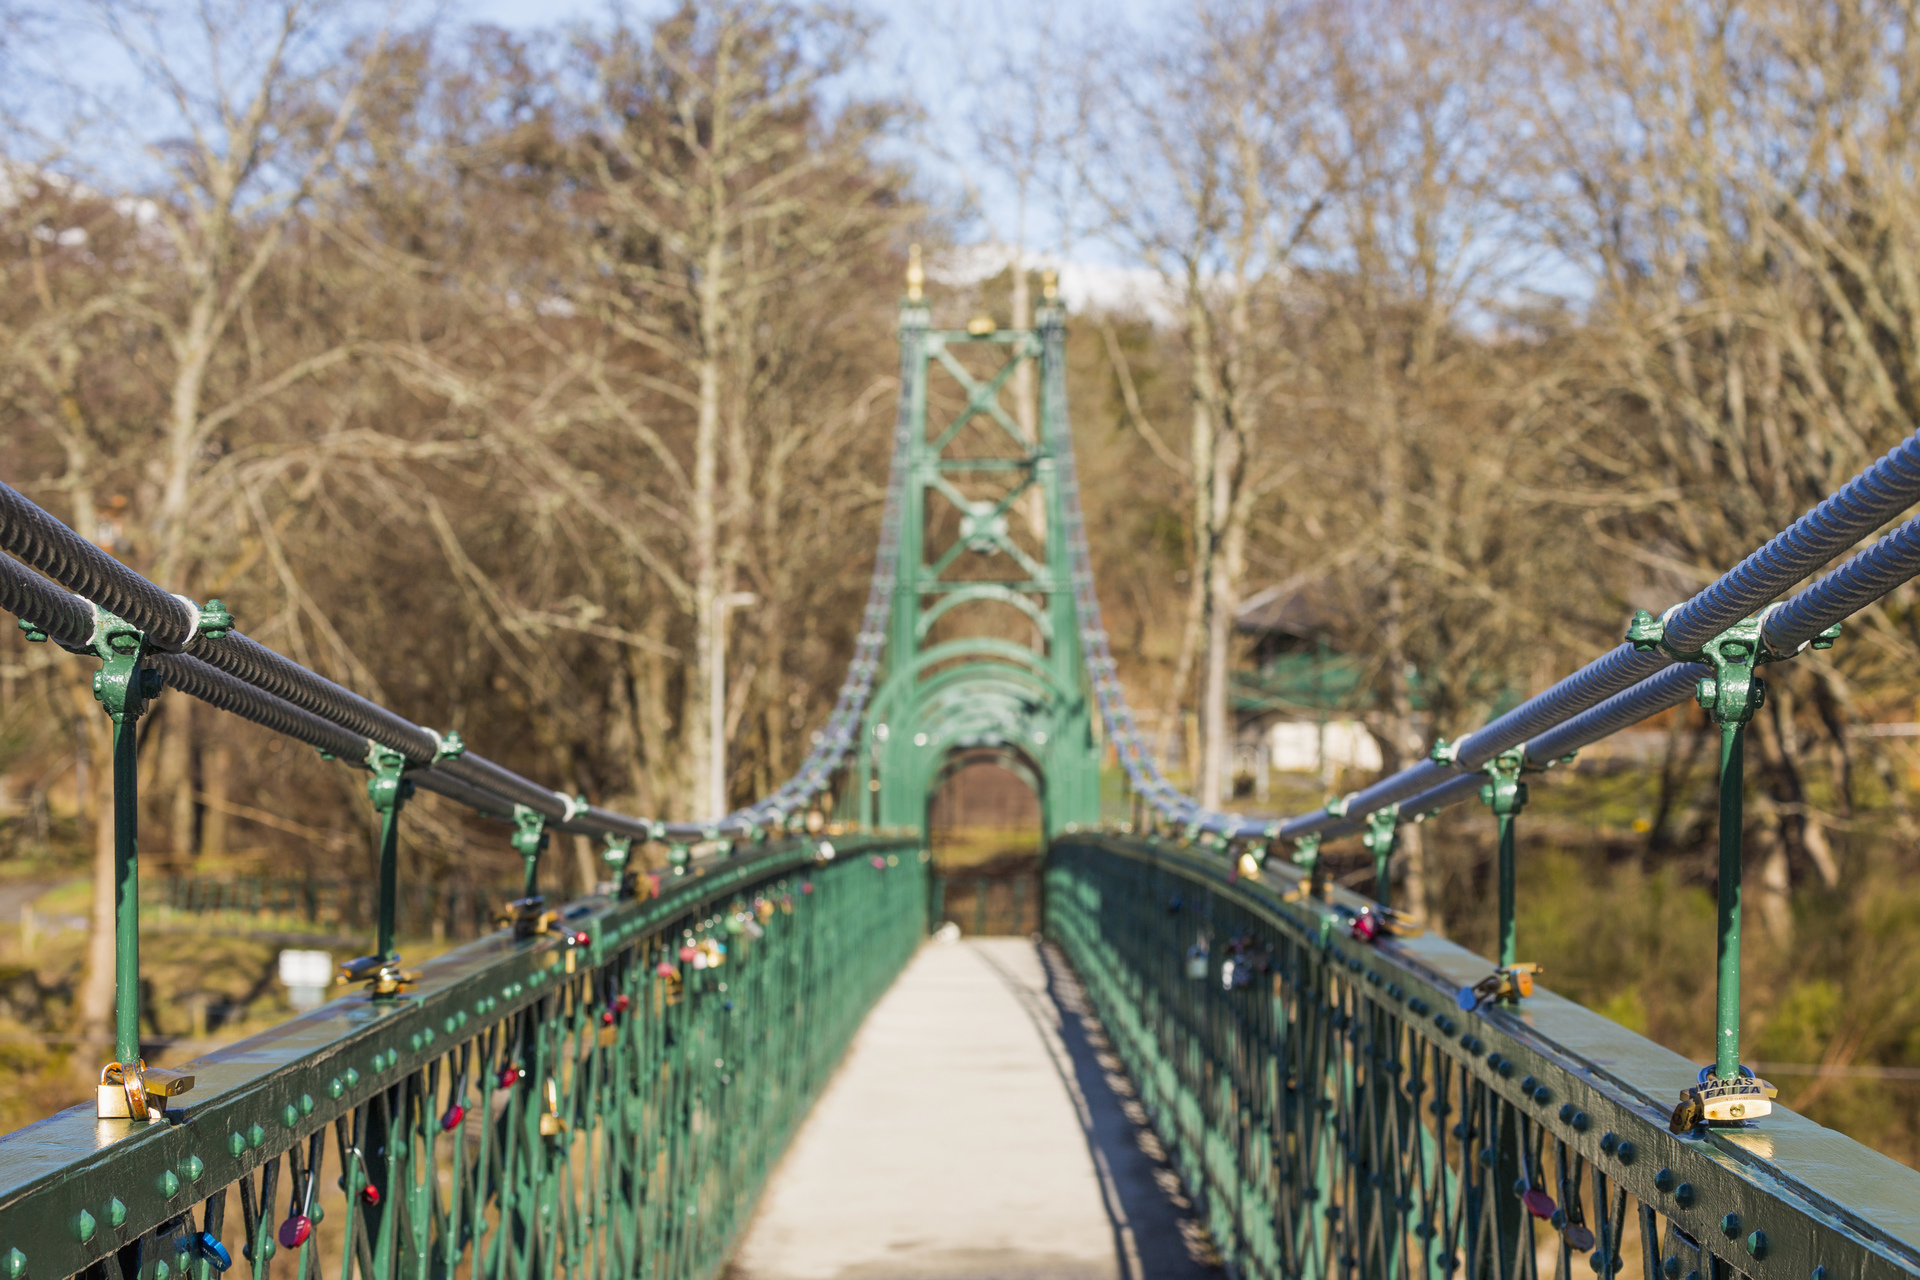 Port-Na-Craig Suspension Bridge, Pitlochry © VisitScotland / Kenny Lam, all rights reserved